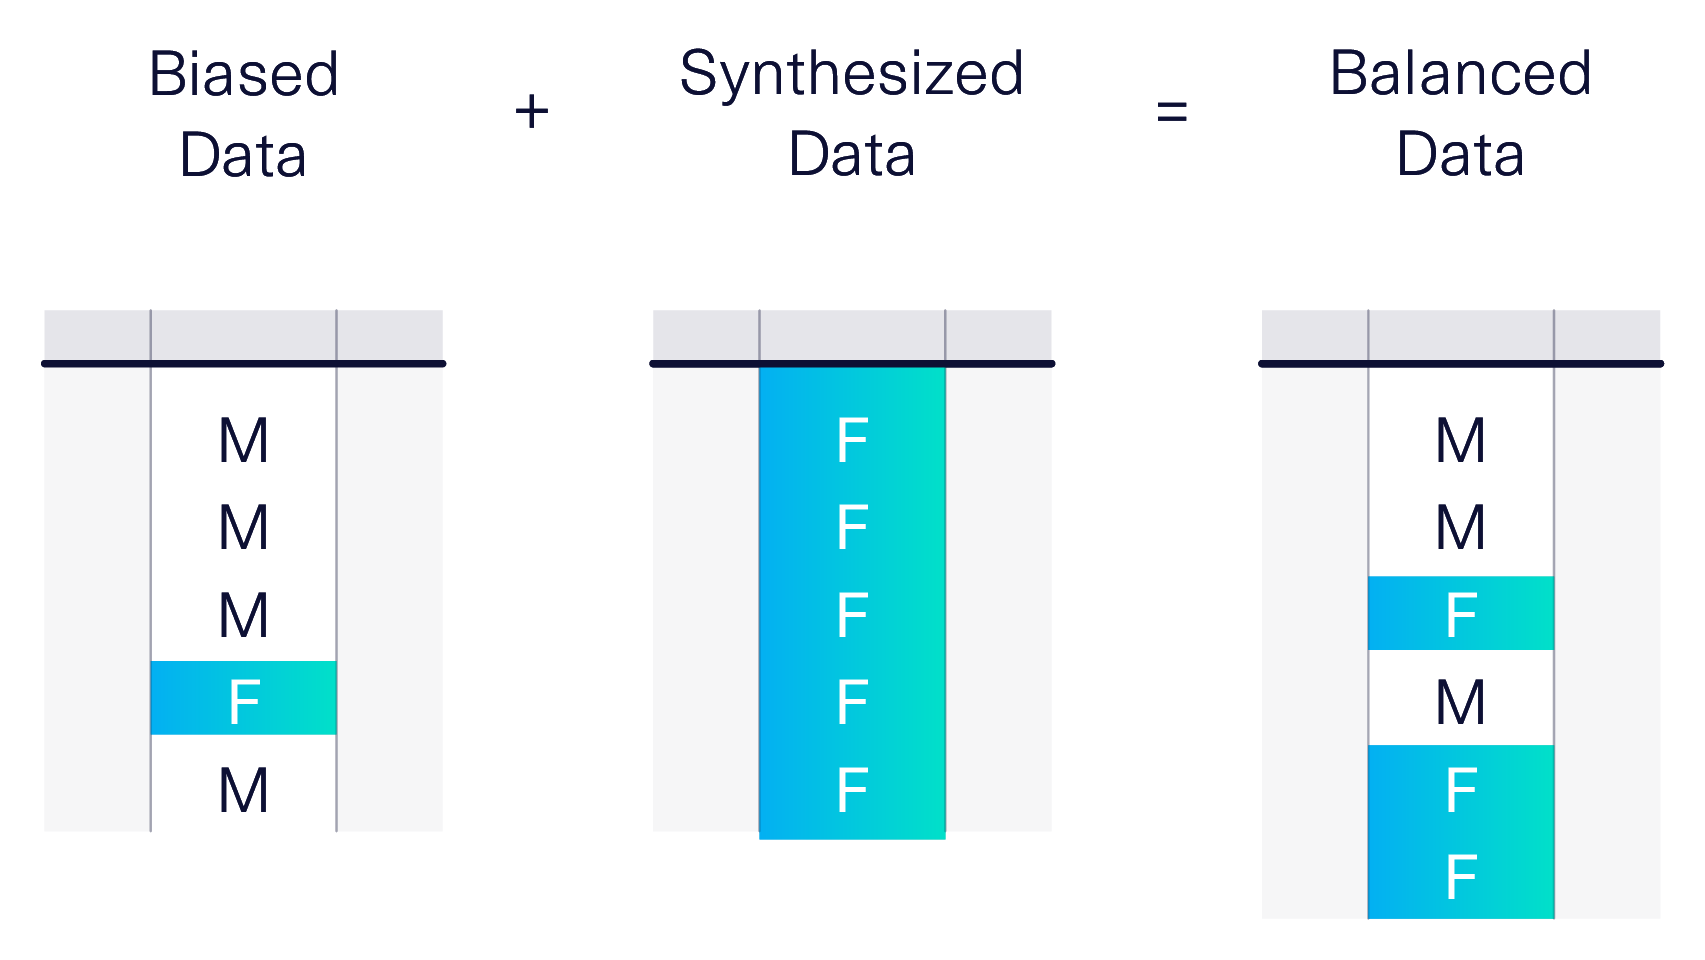 Biased data that contains more males, plus synthesized data with only females, combines to form a balanced dataset with both males and females.